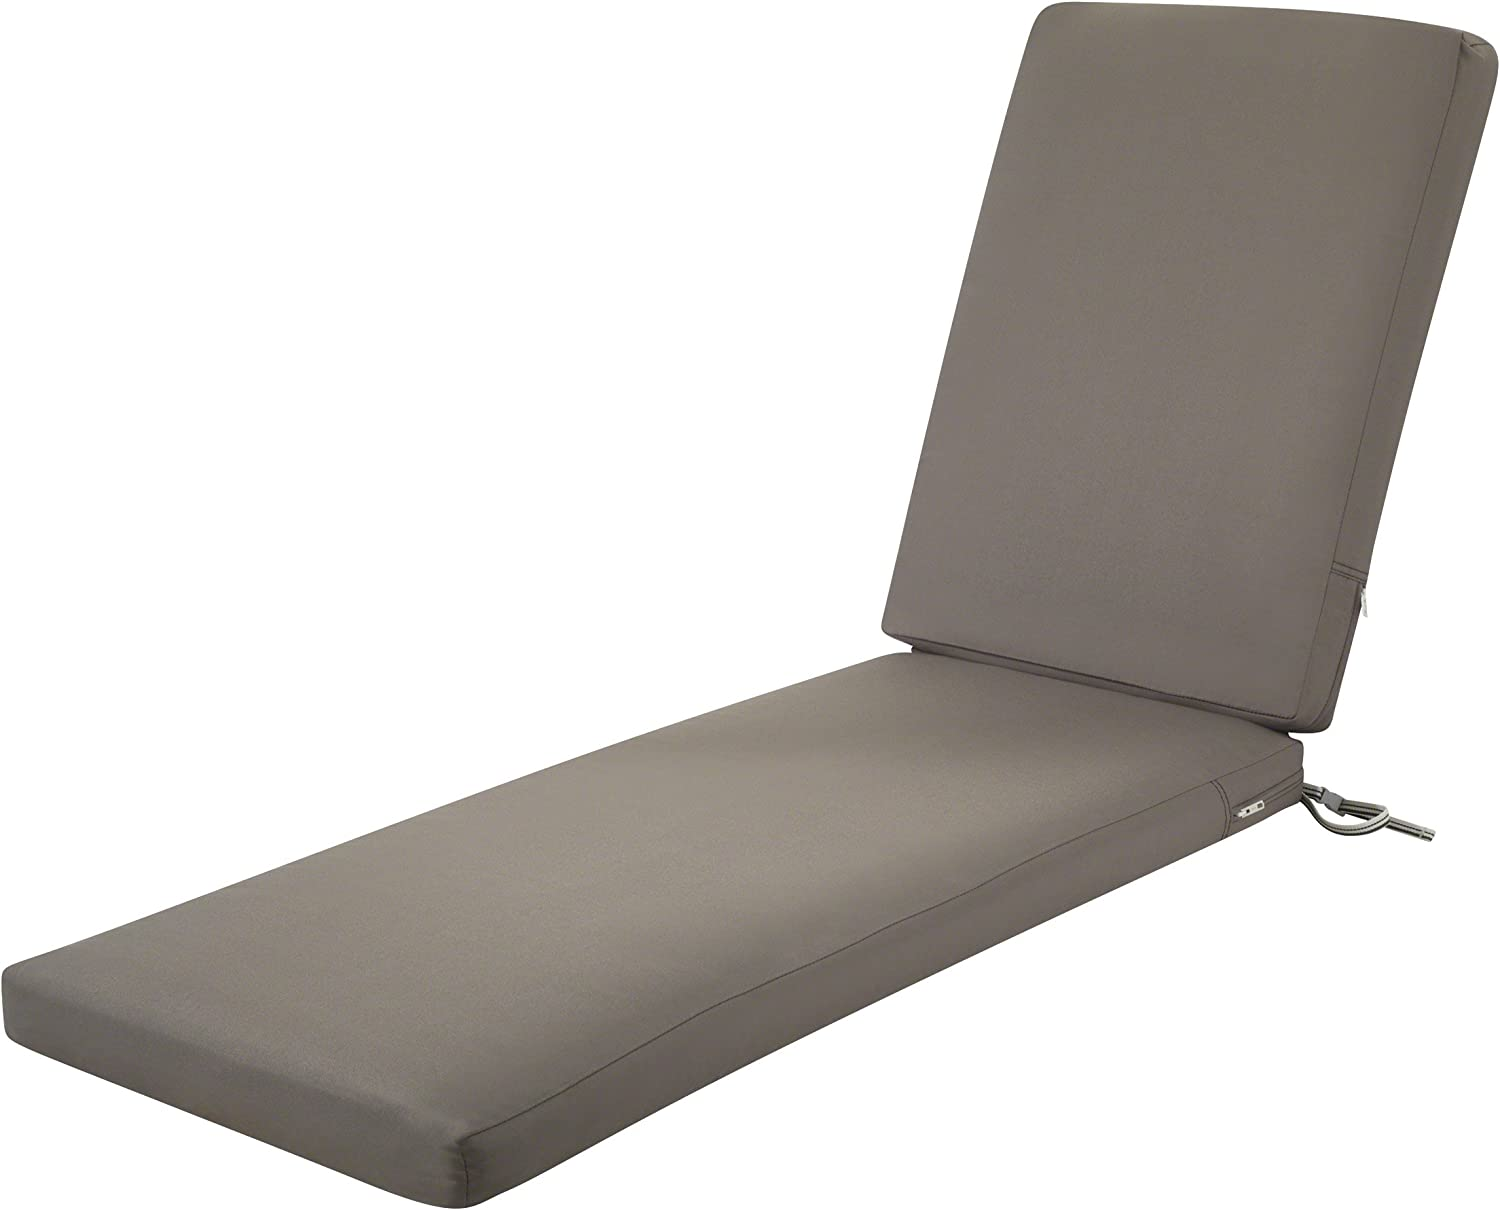 """Classic Accessories Ravenna Outdoor Patio Chaise Lounge Cushion, Dark Taupe, 72""""L x 21""""W x 3""""T"""